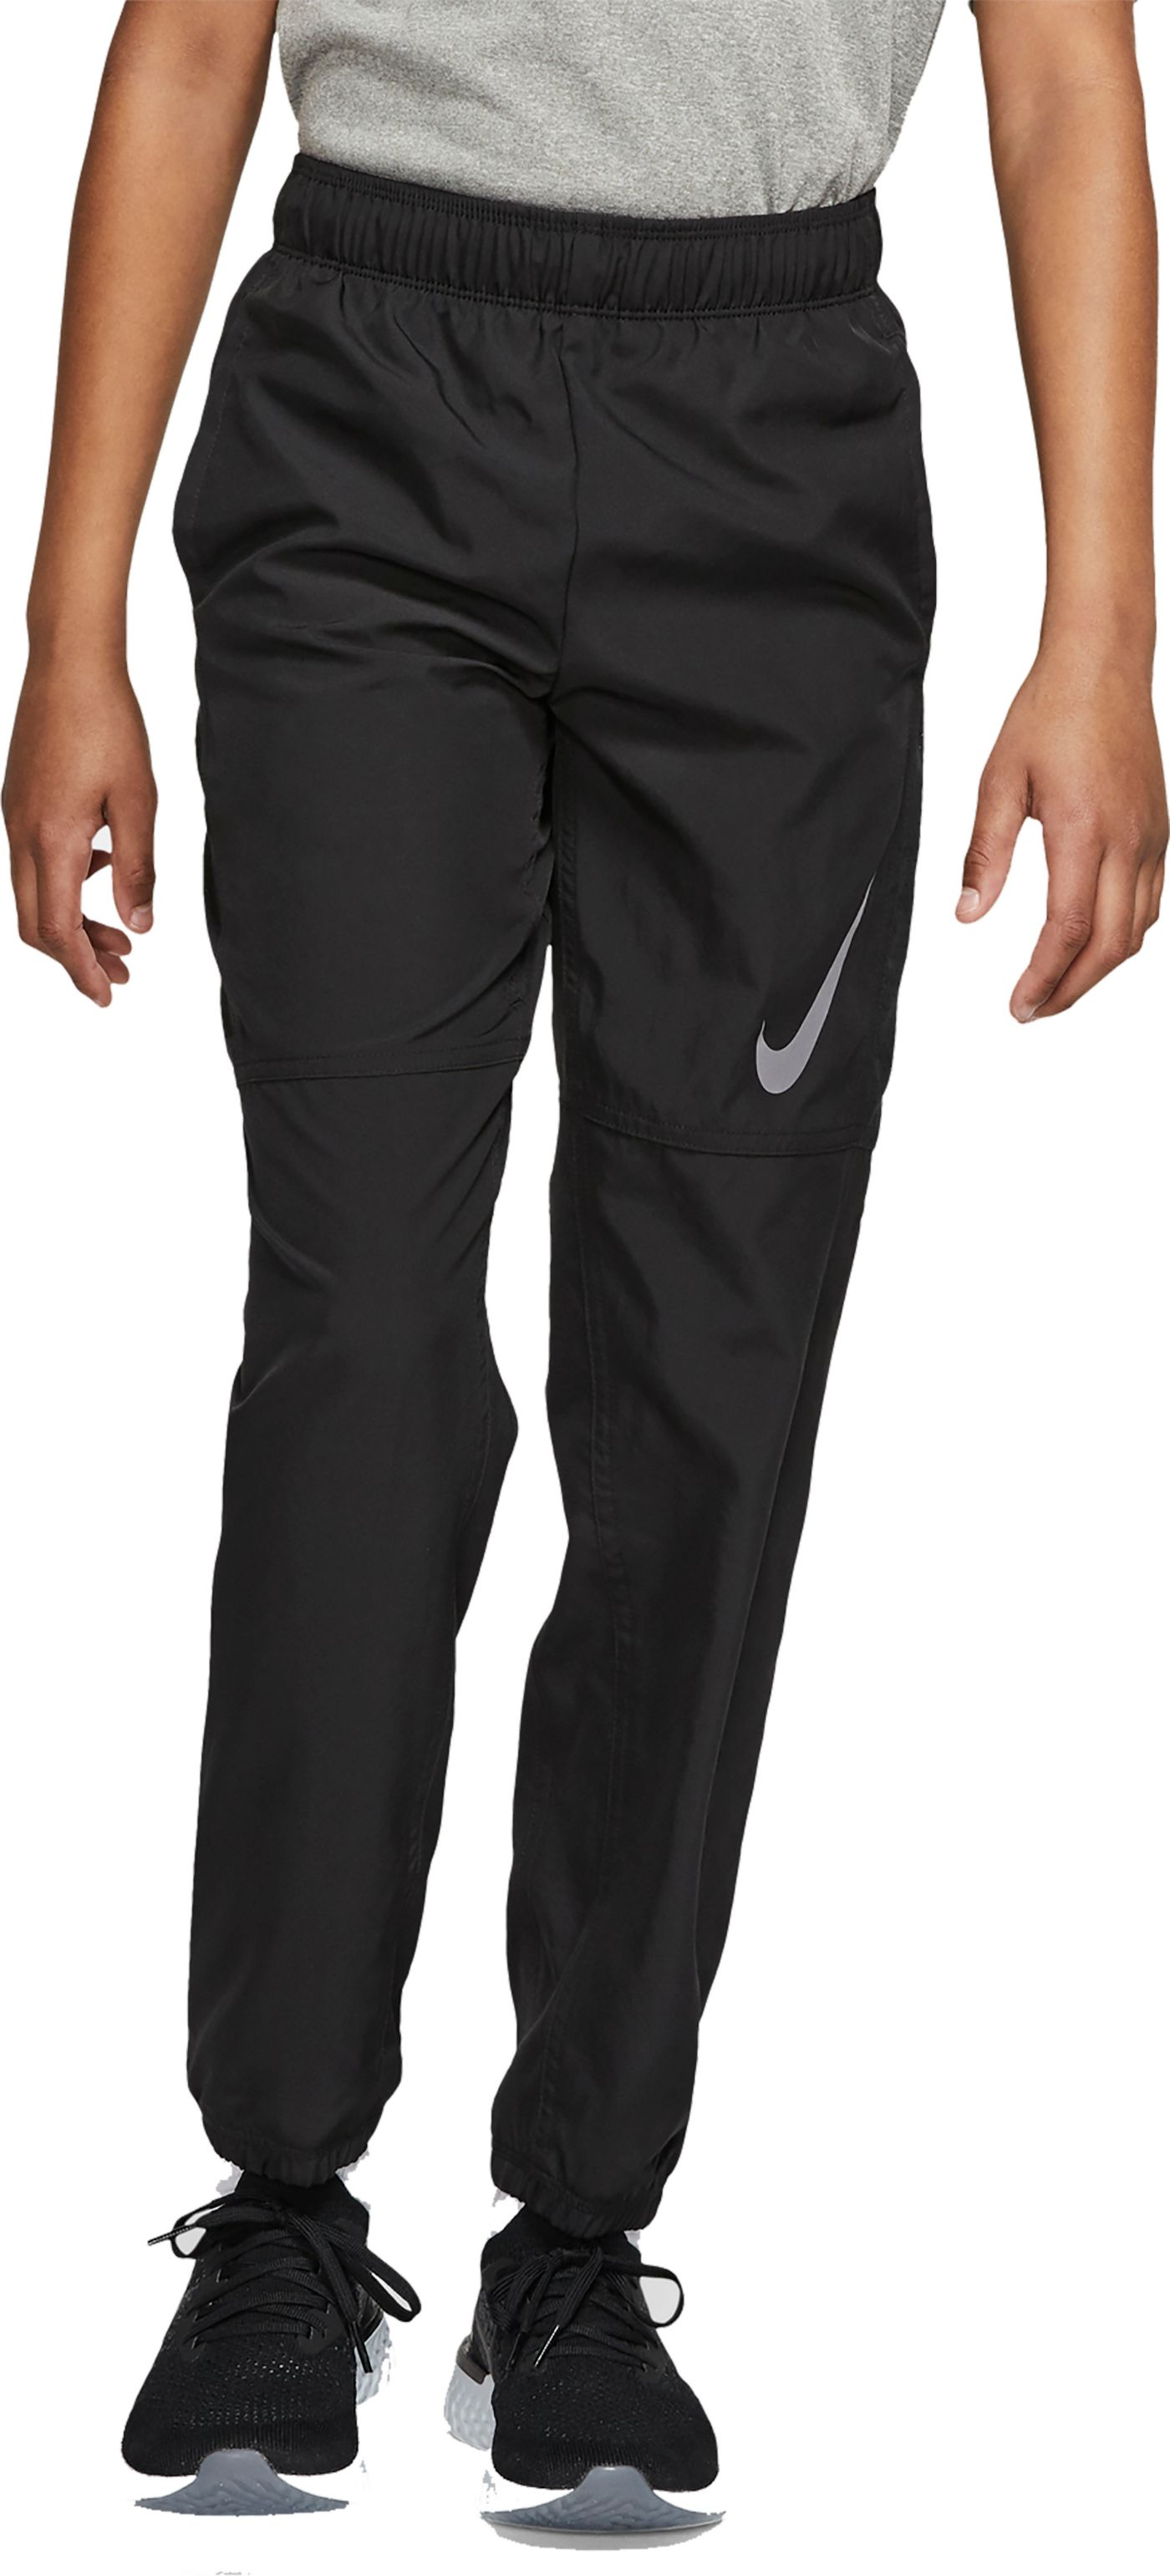 Nike Boys' Woven Training Pants